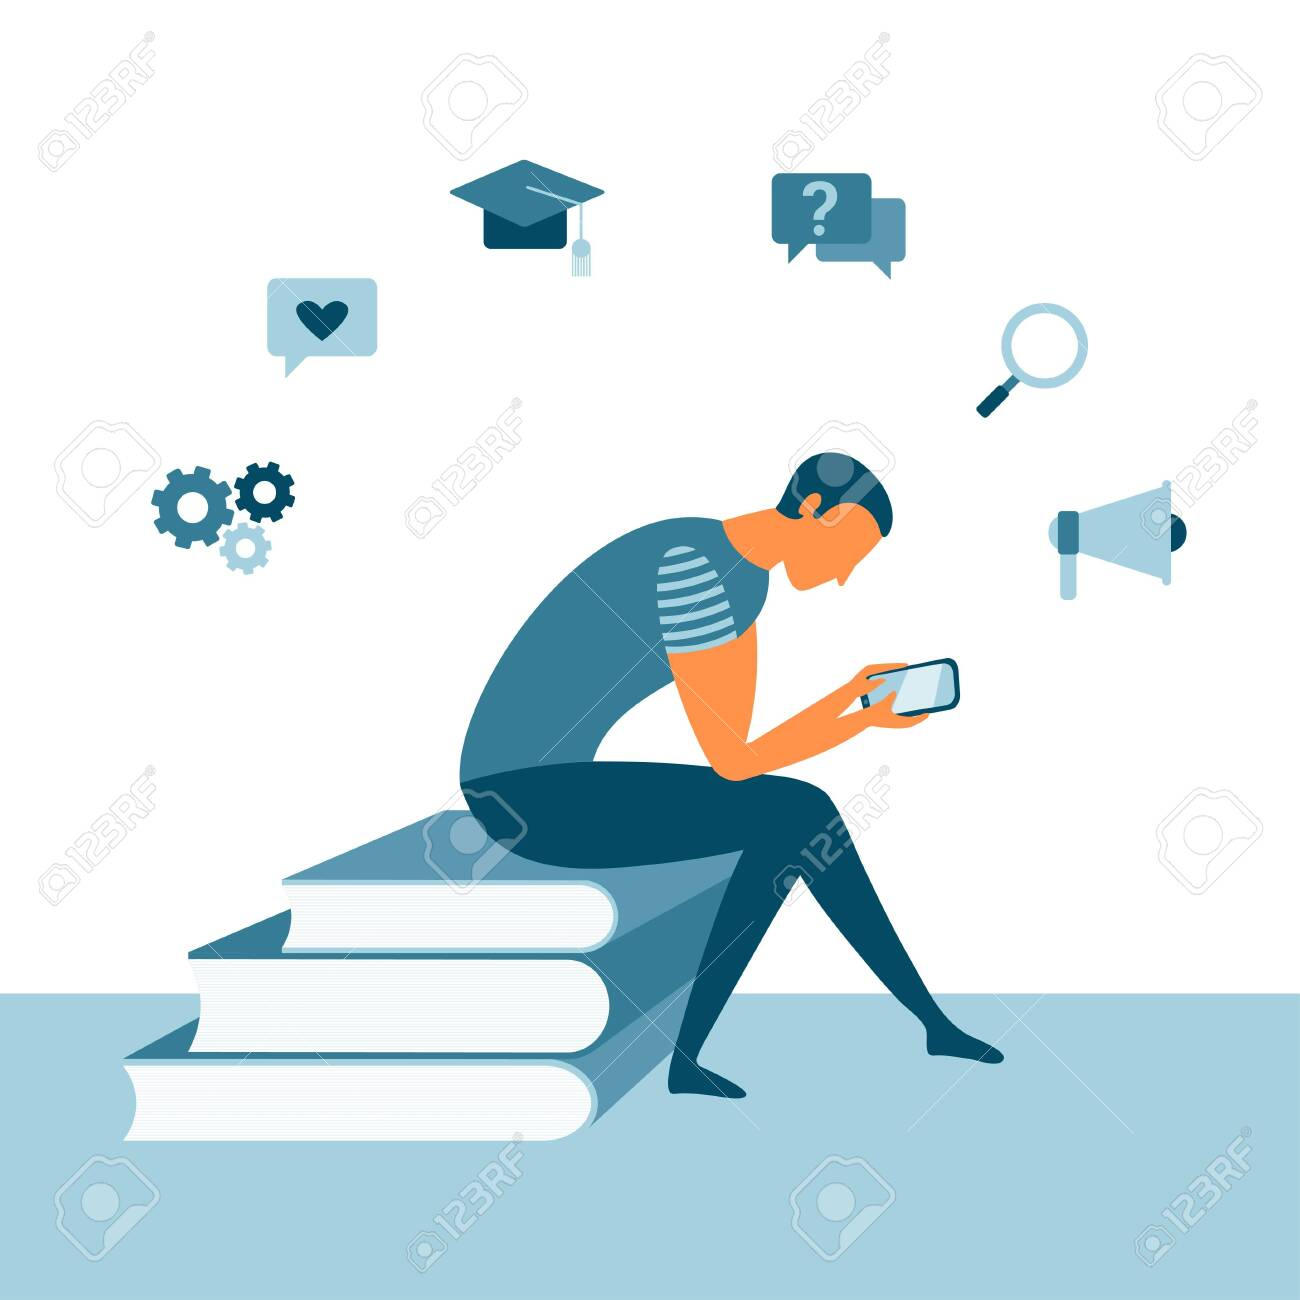 Online reading with a man sitting on books and using a smartphone. Mobile app concept for learning or reading. Education concept. Vector student design - 143047141